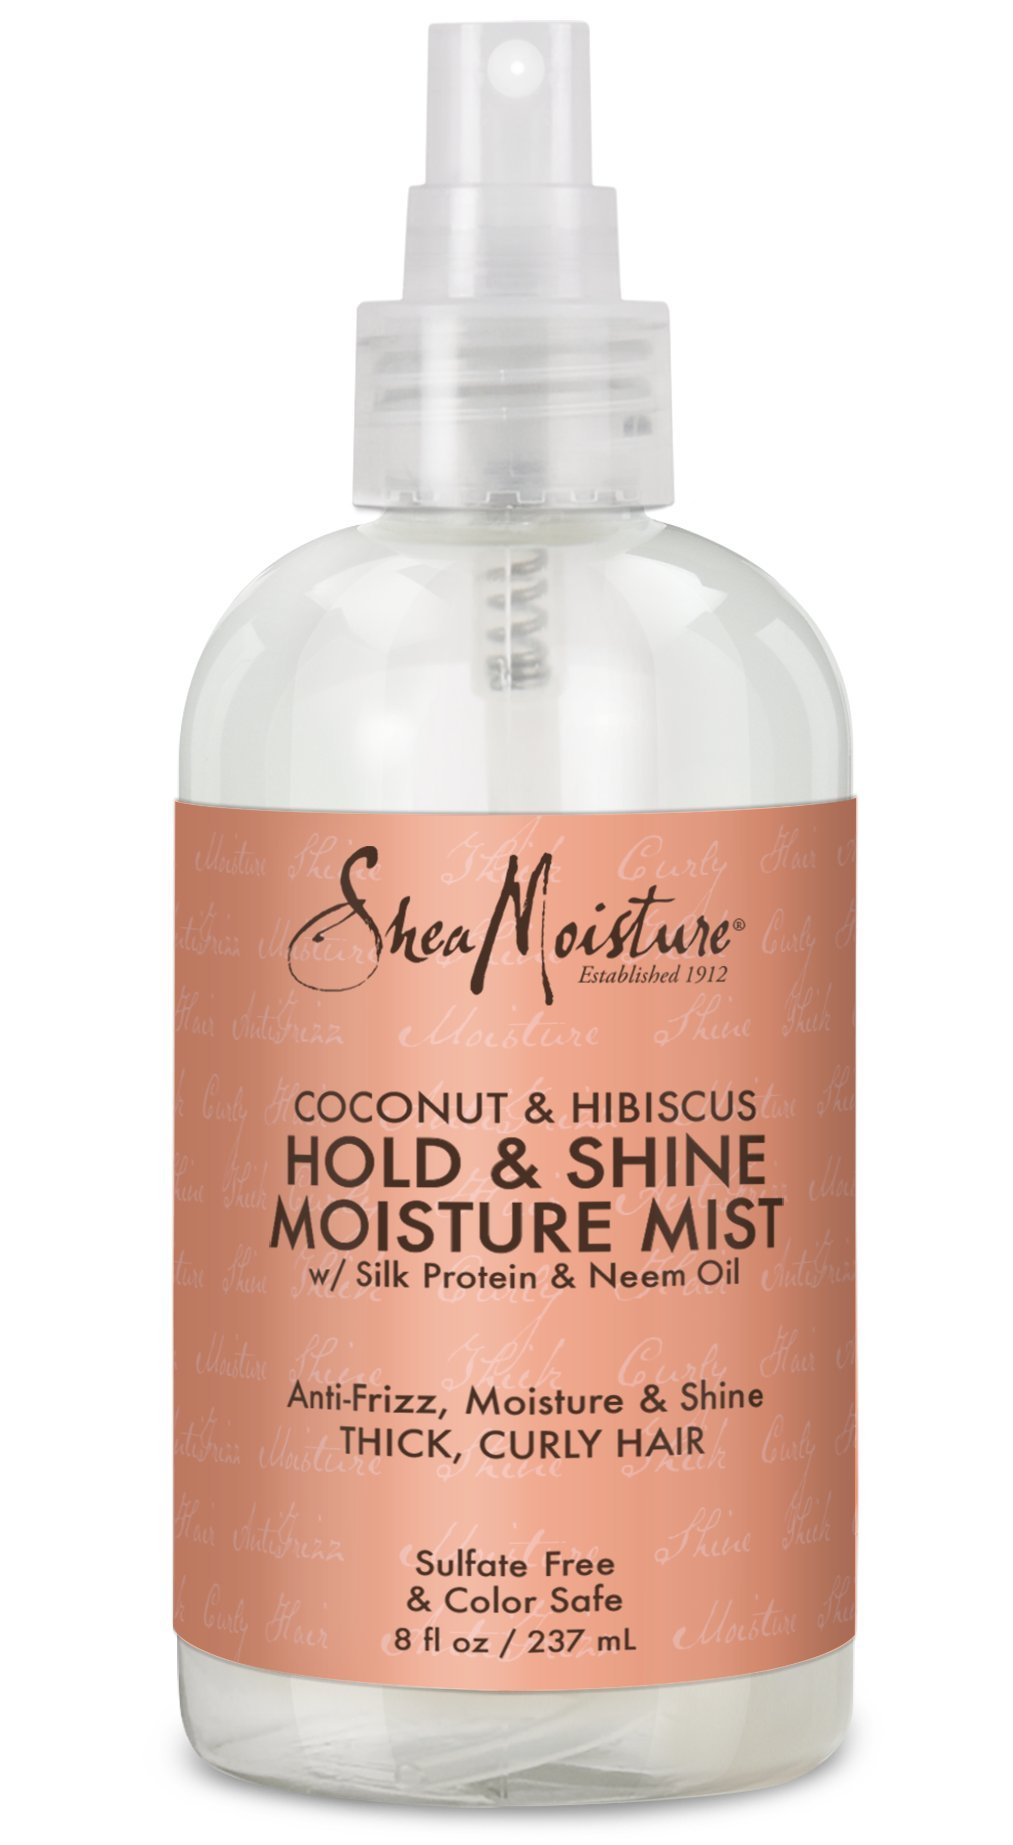 shea moisture coconut and hibiscus reviews